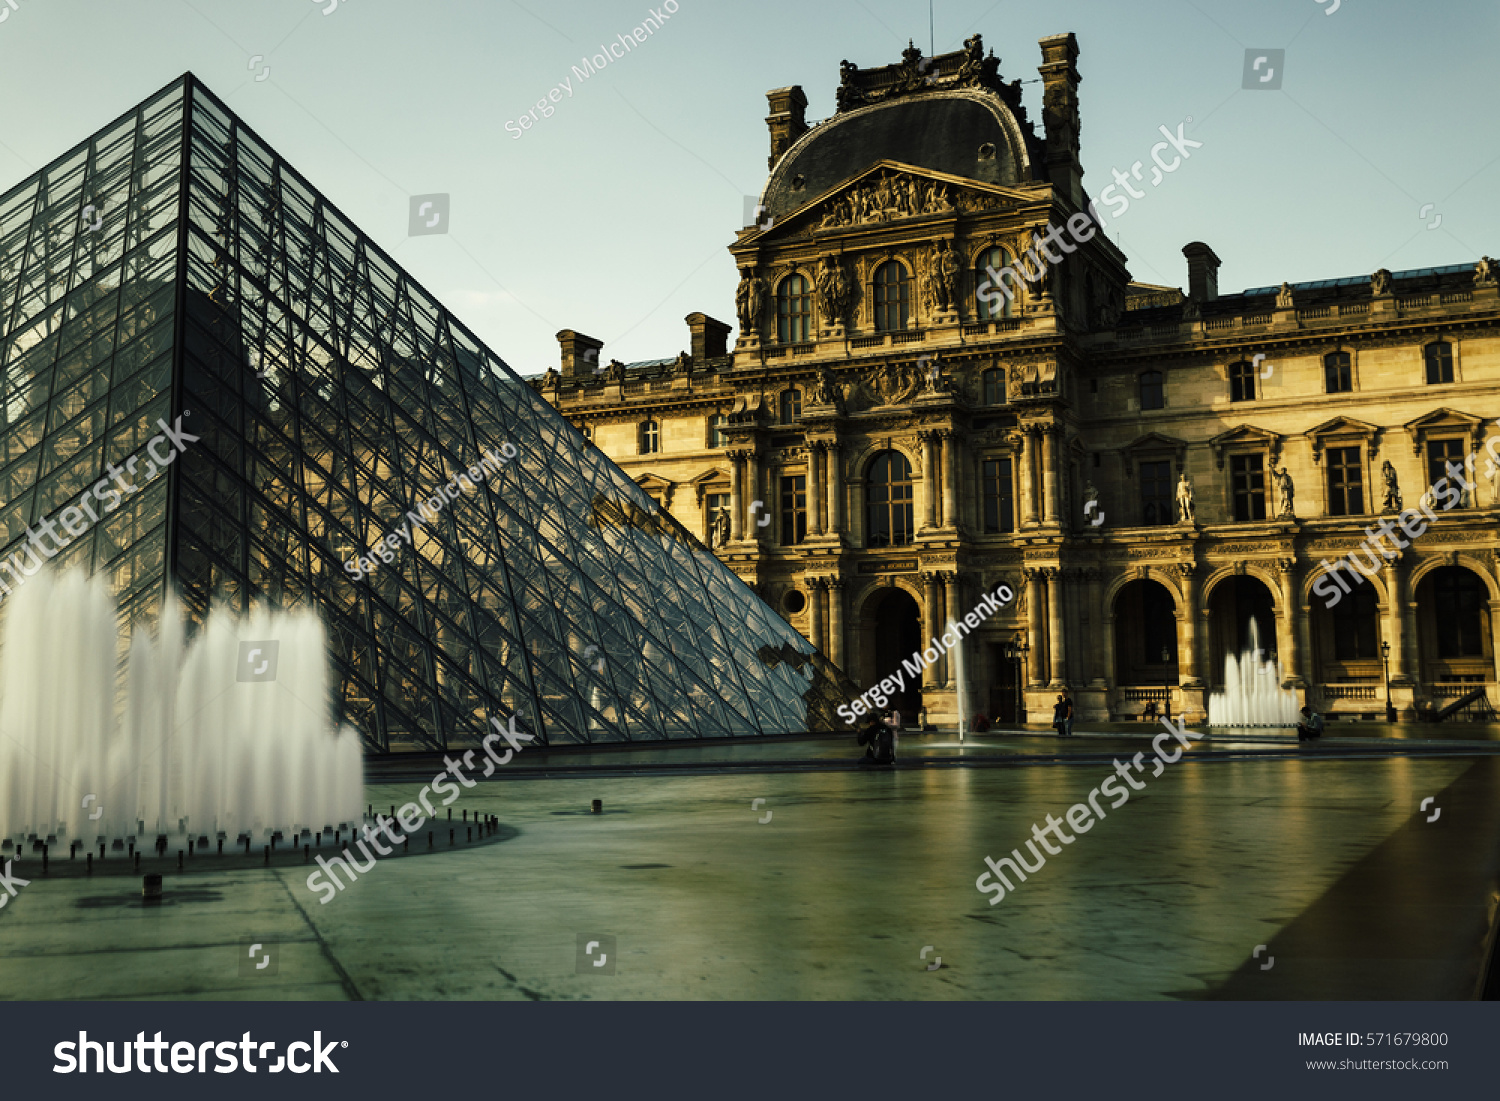 a day of art in the louvre museum in europe Winged victory of samothrace, louvre museum, paris, france with curiosity and  imagination, europe's art museums become vehicles for time travel  challenges  of the day were, and so on, paintings and statues become the closest thing to a.